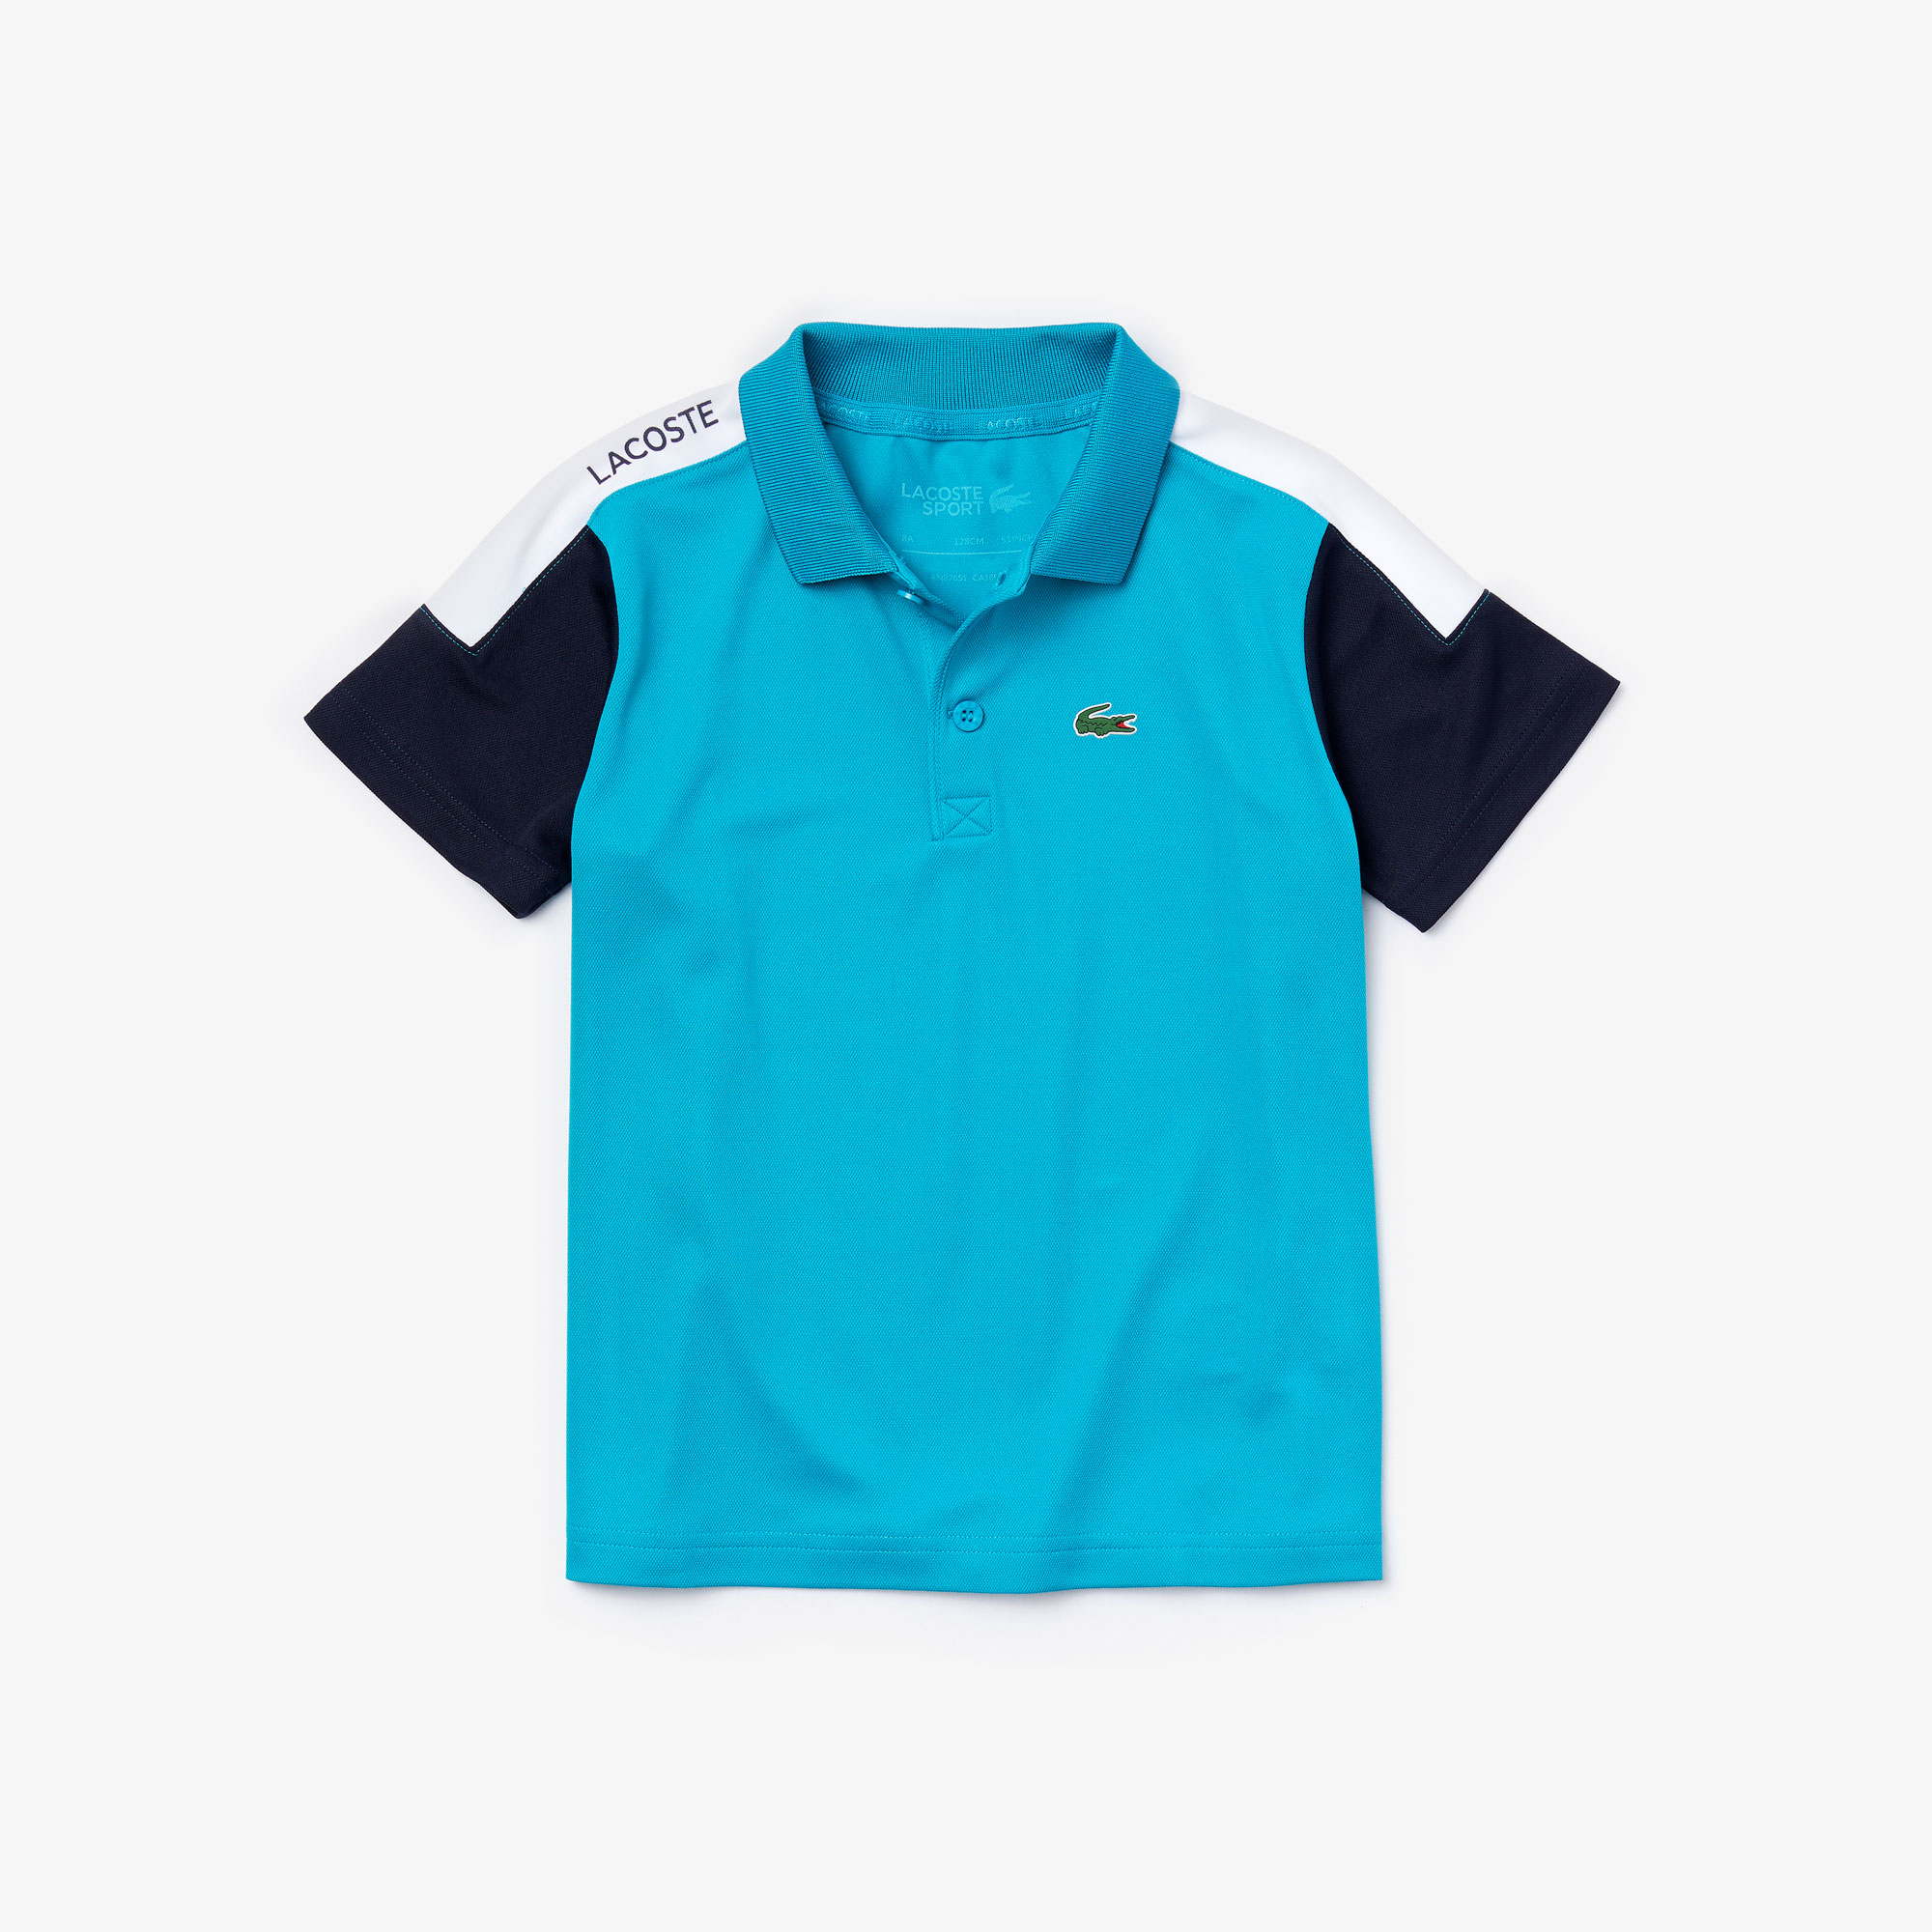 Boys' Lacoste SPORT Breathable, Run-Resistant Tennis Polo Shirt